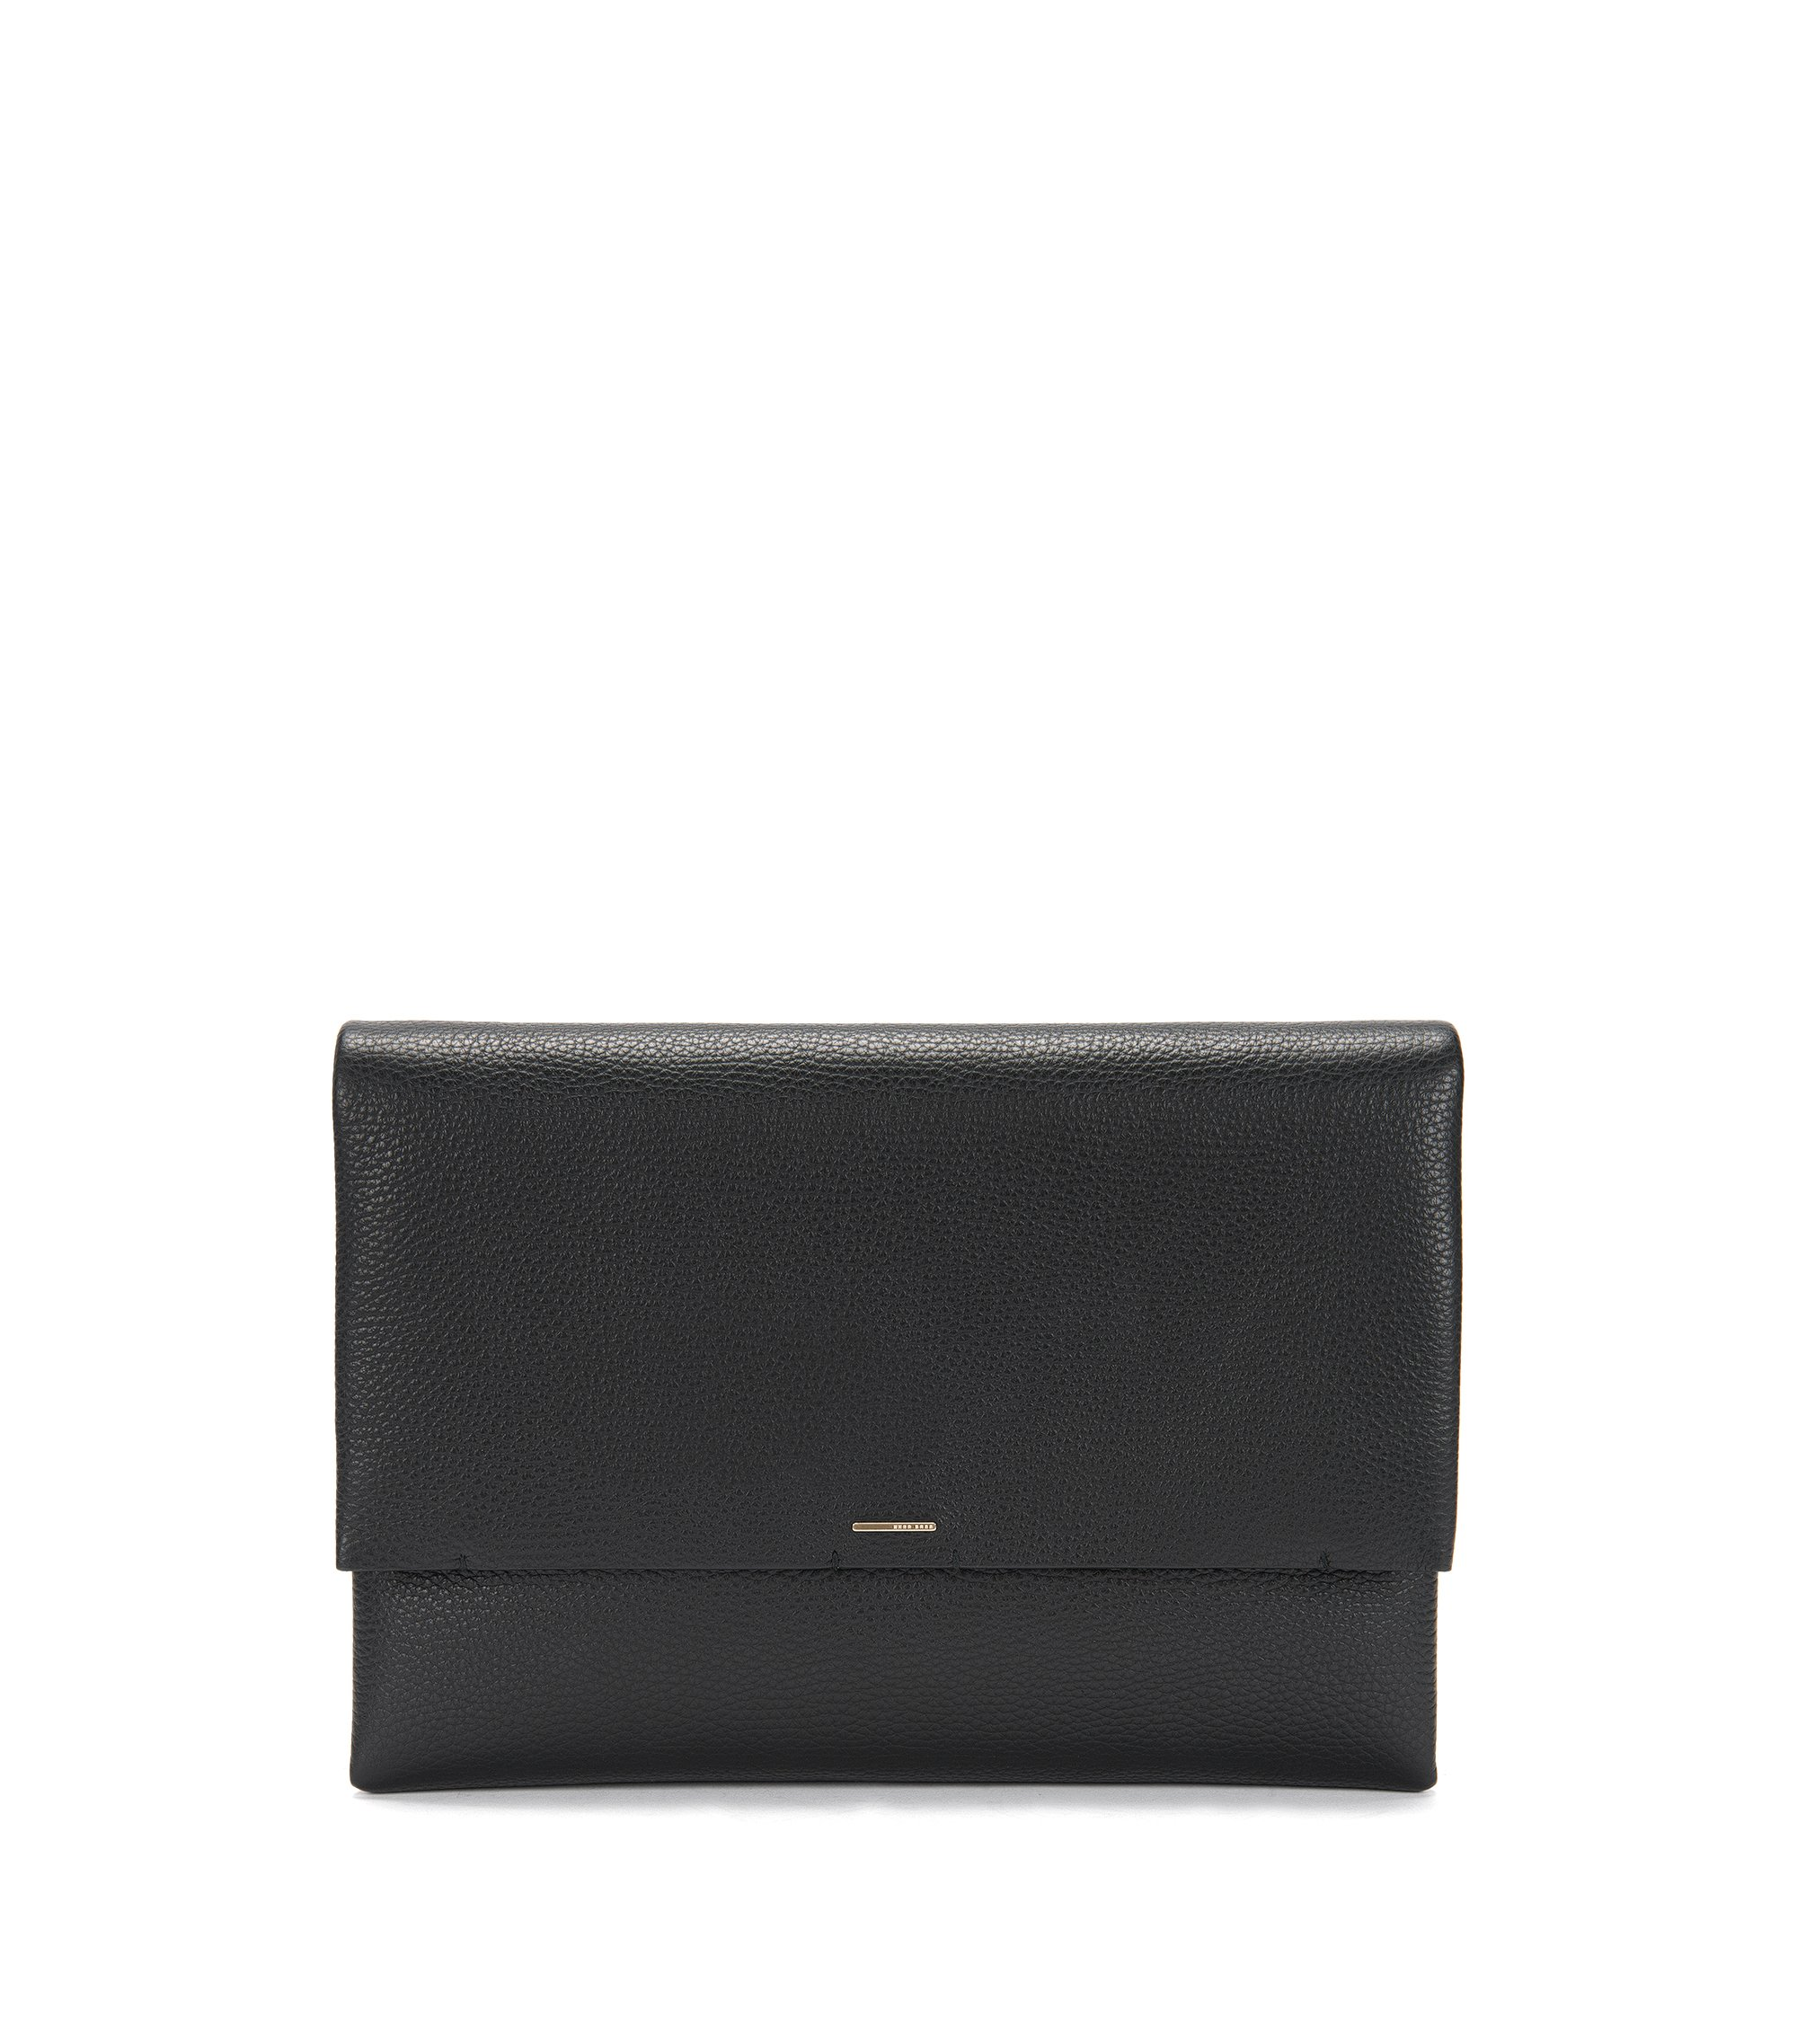 BOSS Luxury Staple Clutch in unlined Italian leather with chain strap, Black